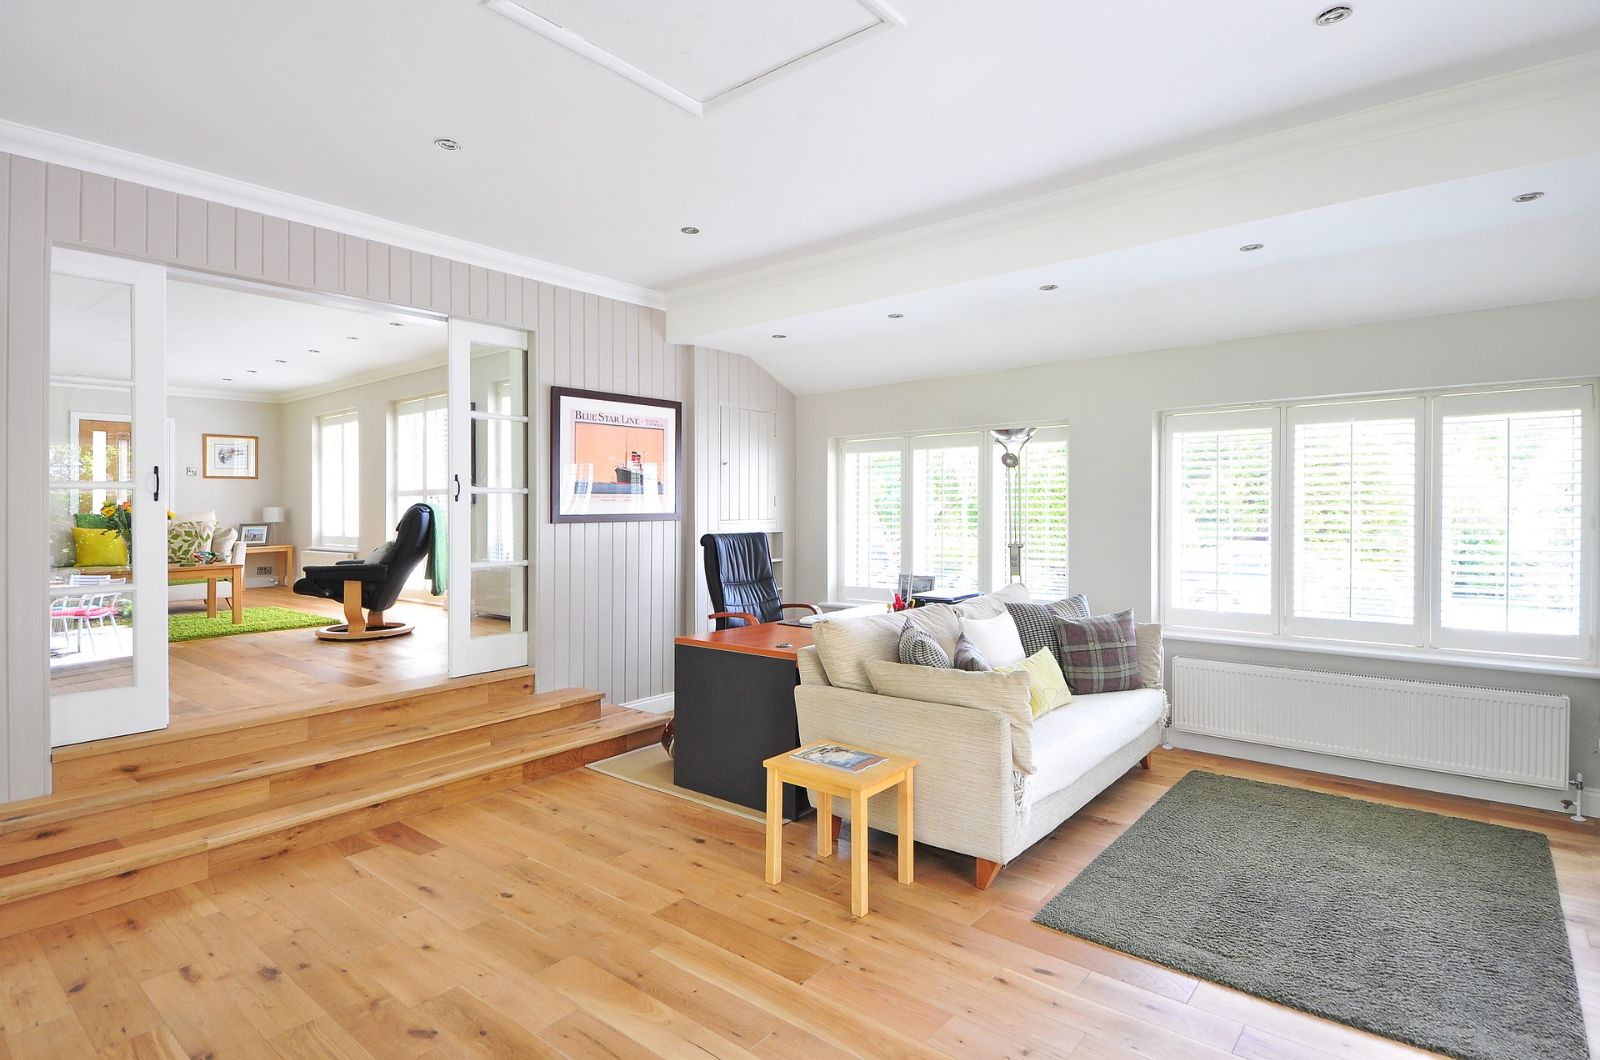 The Wooden Floor Trend Continues